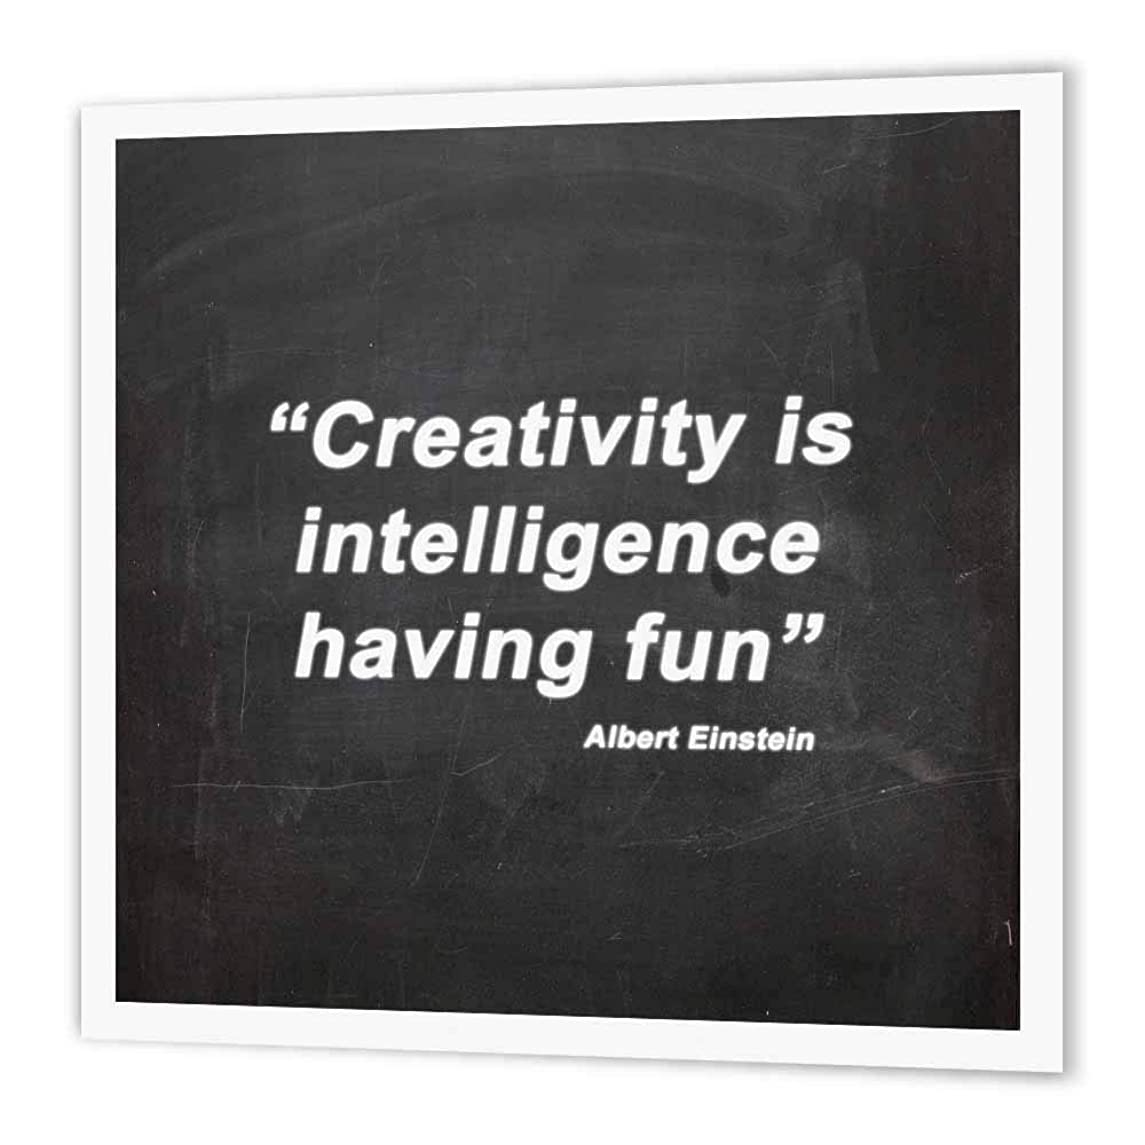 3dRose ht_173269_1 Creativity is Intelligence Having Fun, Quote-Iron on Heat Transfer Paper for White Material, 8 by 8-Inch